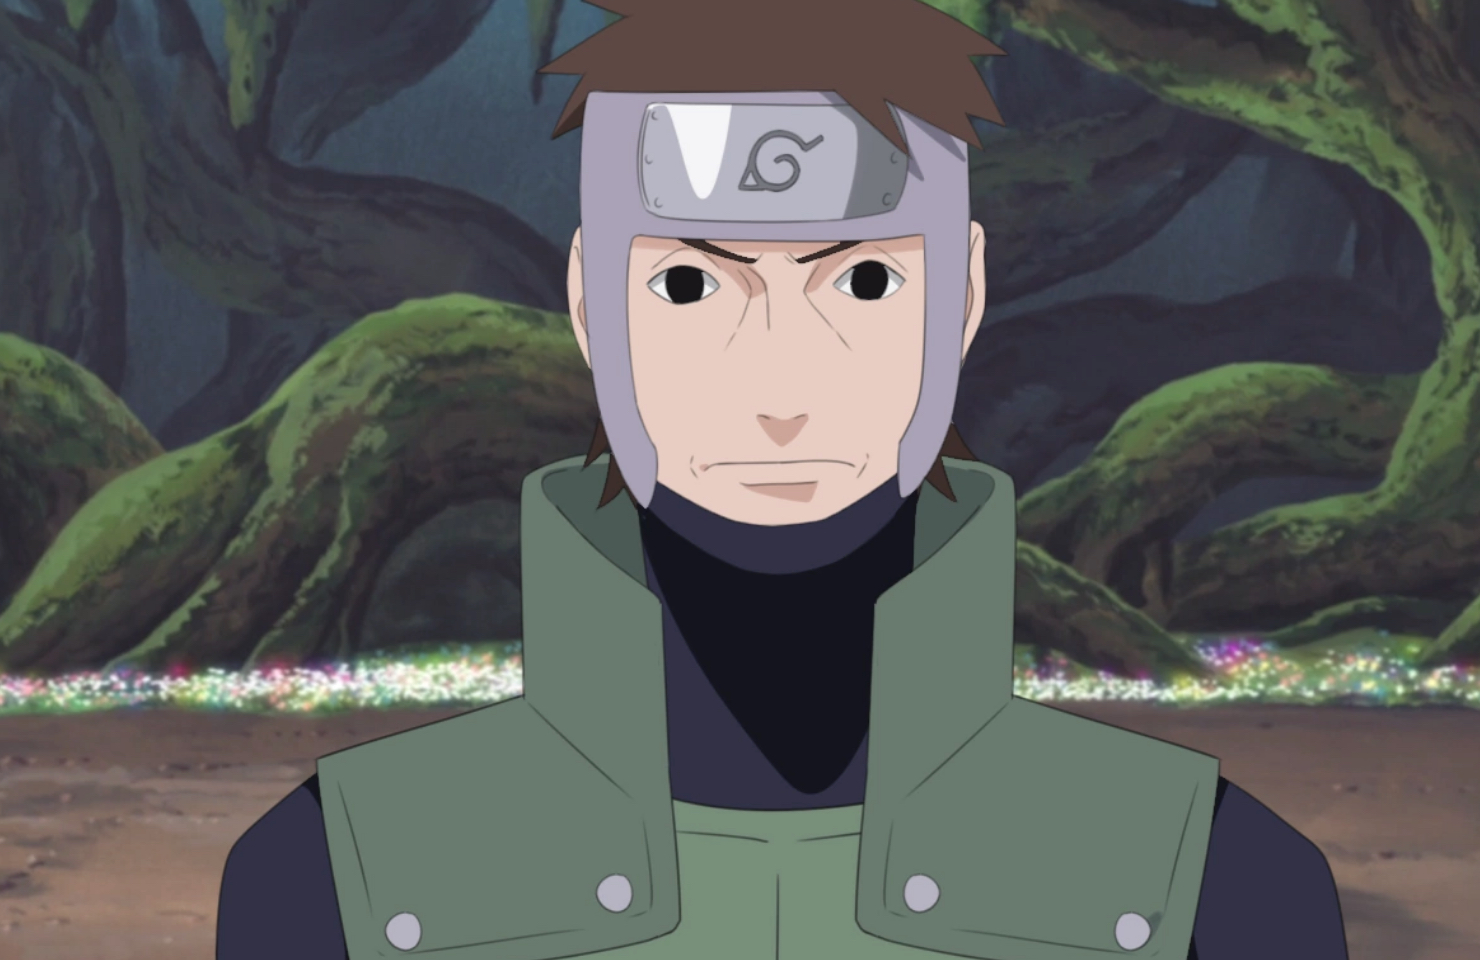 yamato anime naruto: 20 Powers Only Hardcore Anime Fans Know Naruto Has (And 10